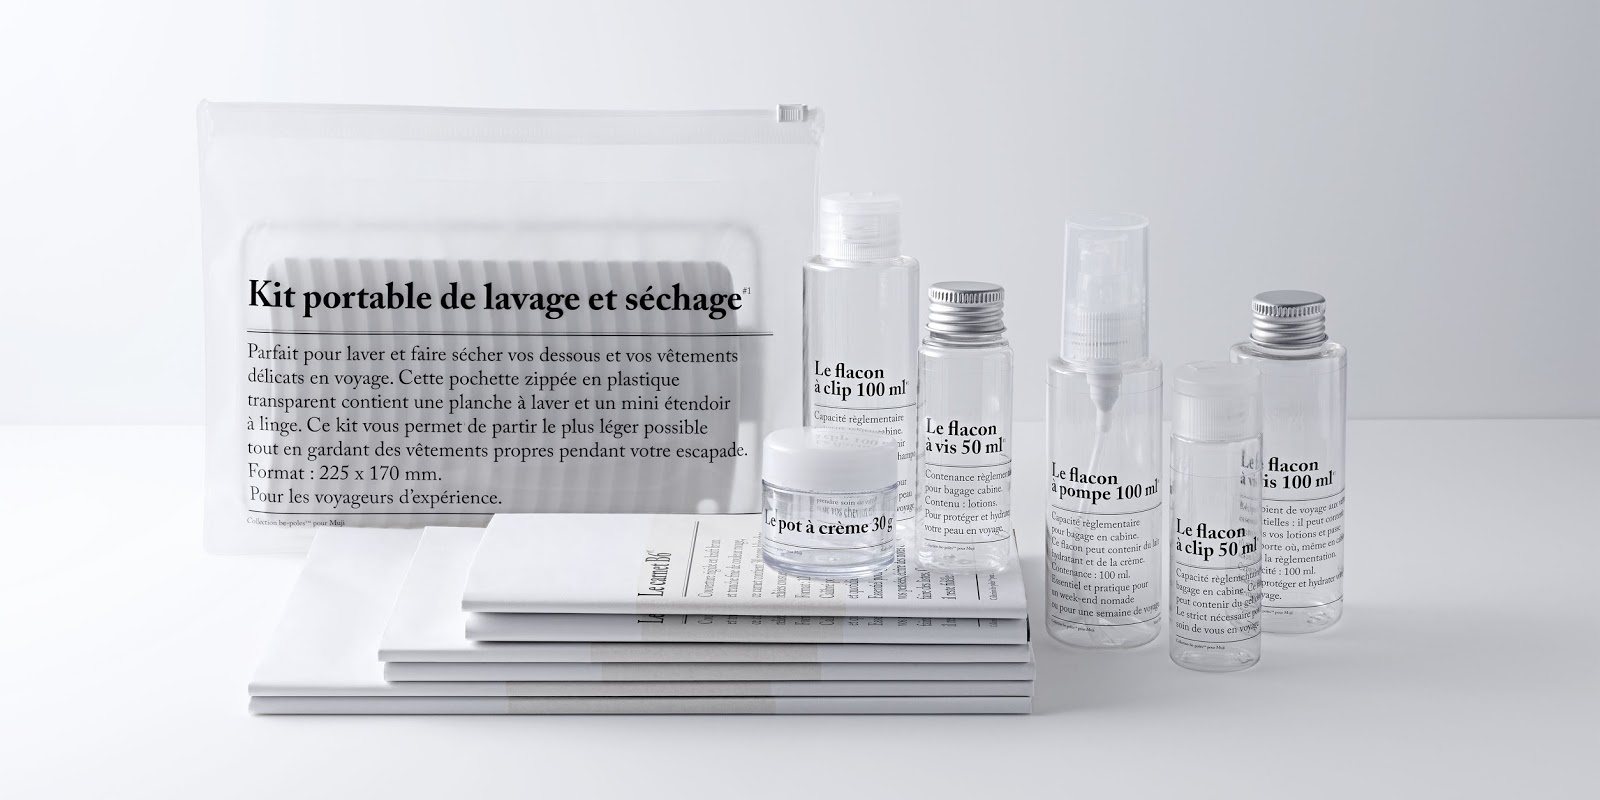 muji, be poles, voyage, collaboration, collection capsule, kit voyage